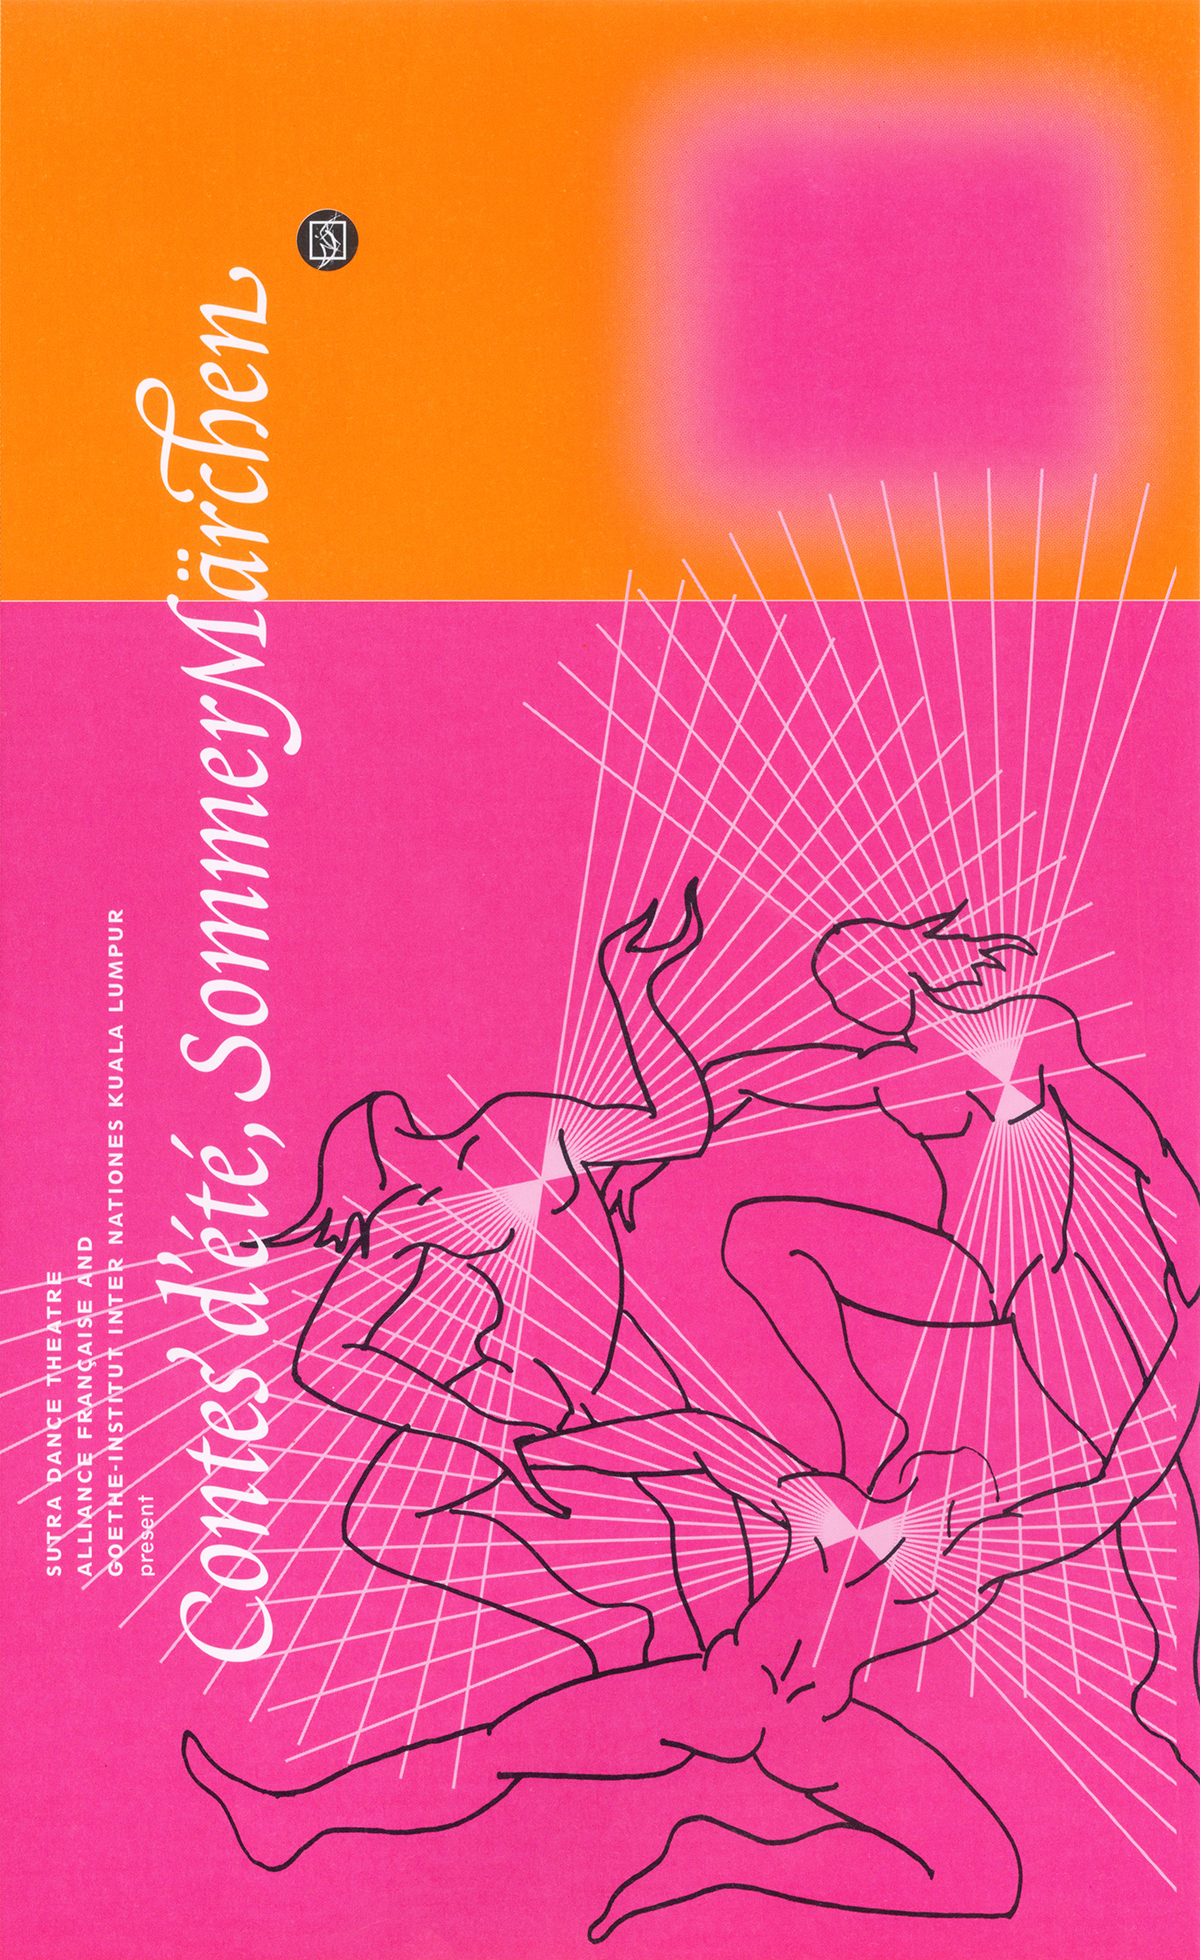 Poster for  Contes d'été, Sommer Märchen   (Summer Tales) , a work under  Sutra's Under the Stars 2003  series.During this early period, some high chroma compositions were explored.